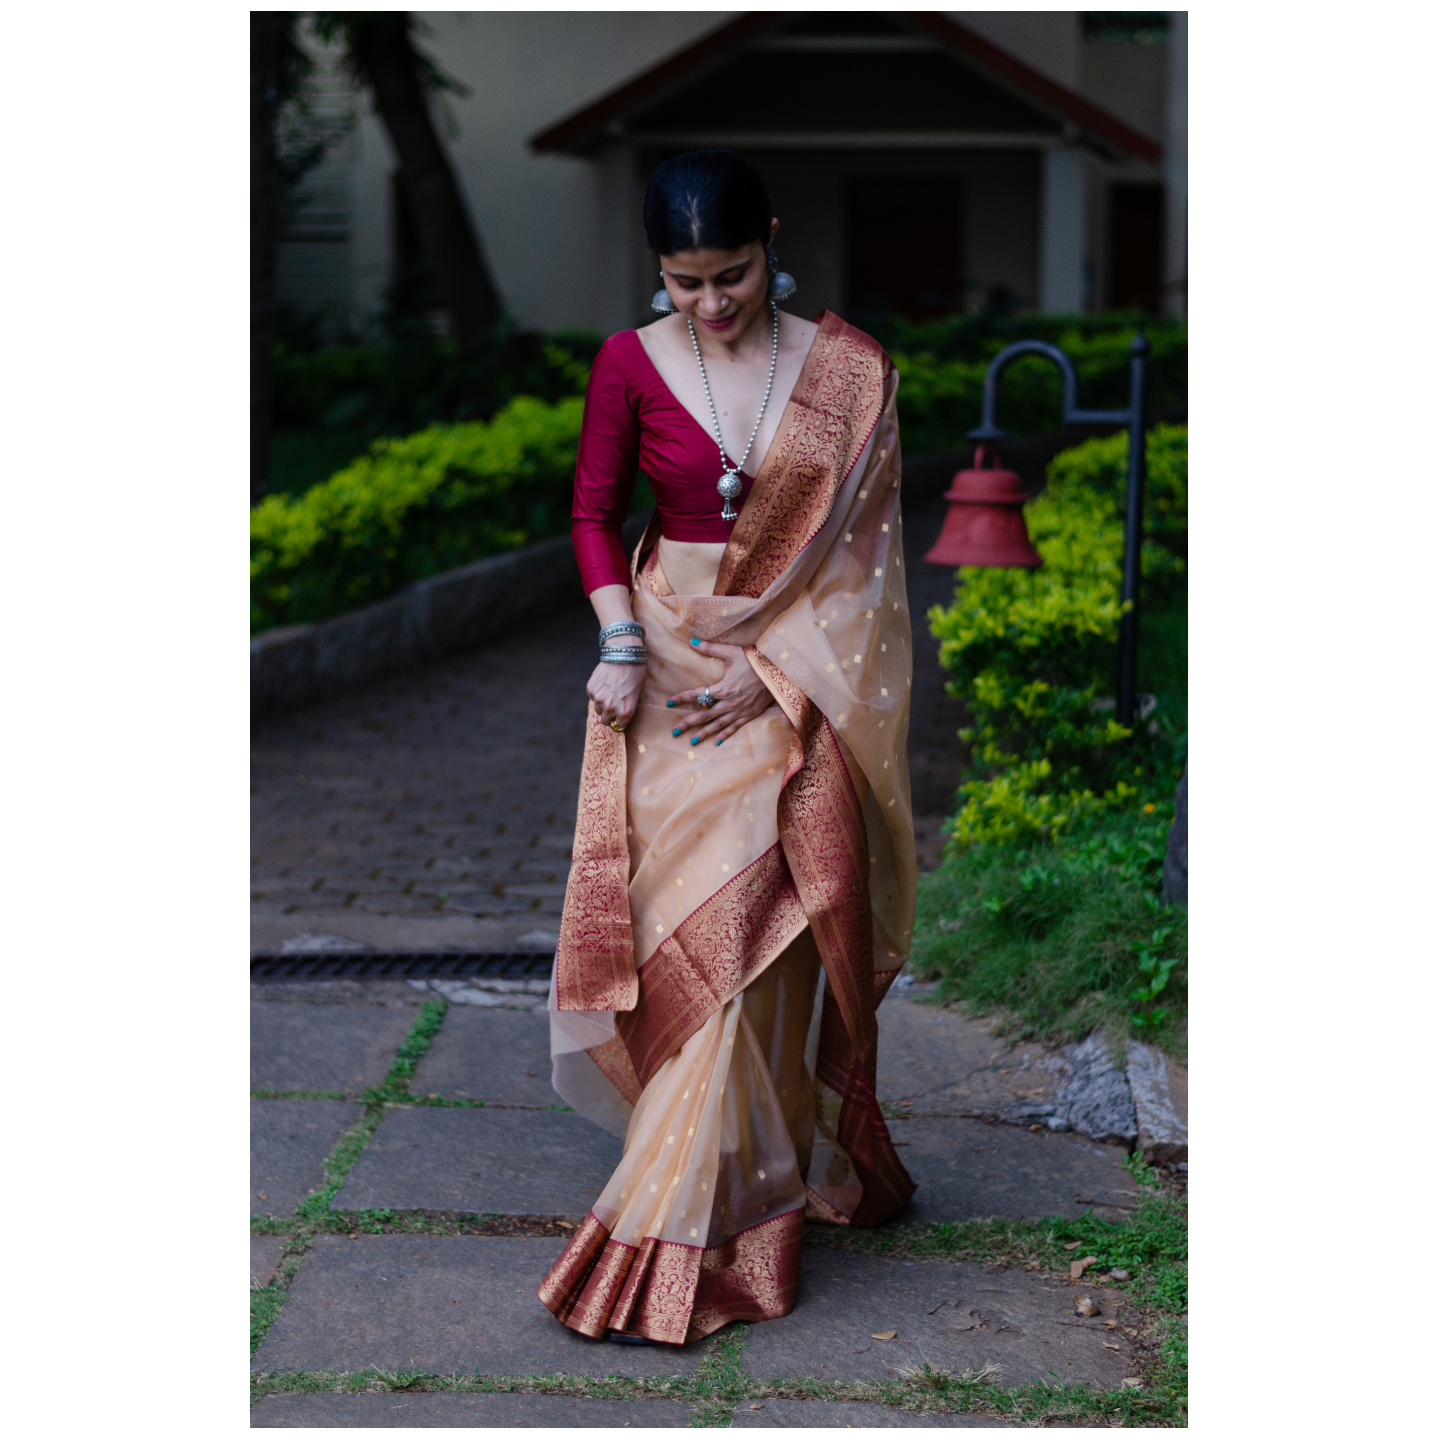 Handloom nakasi border resham silk chanderi saree.